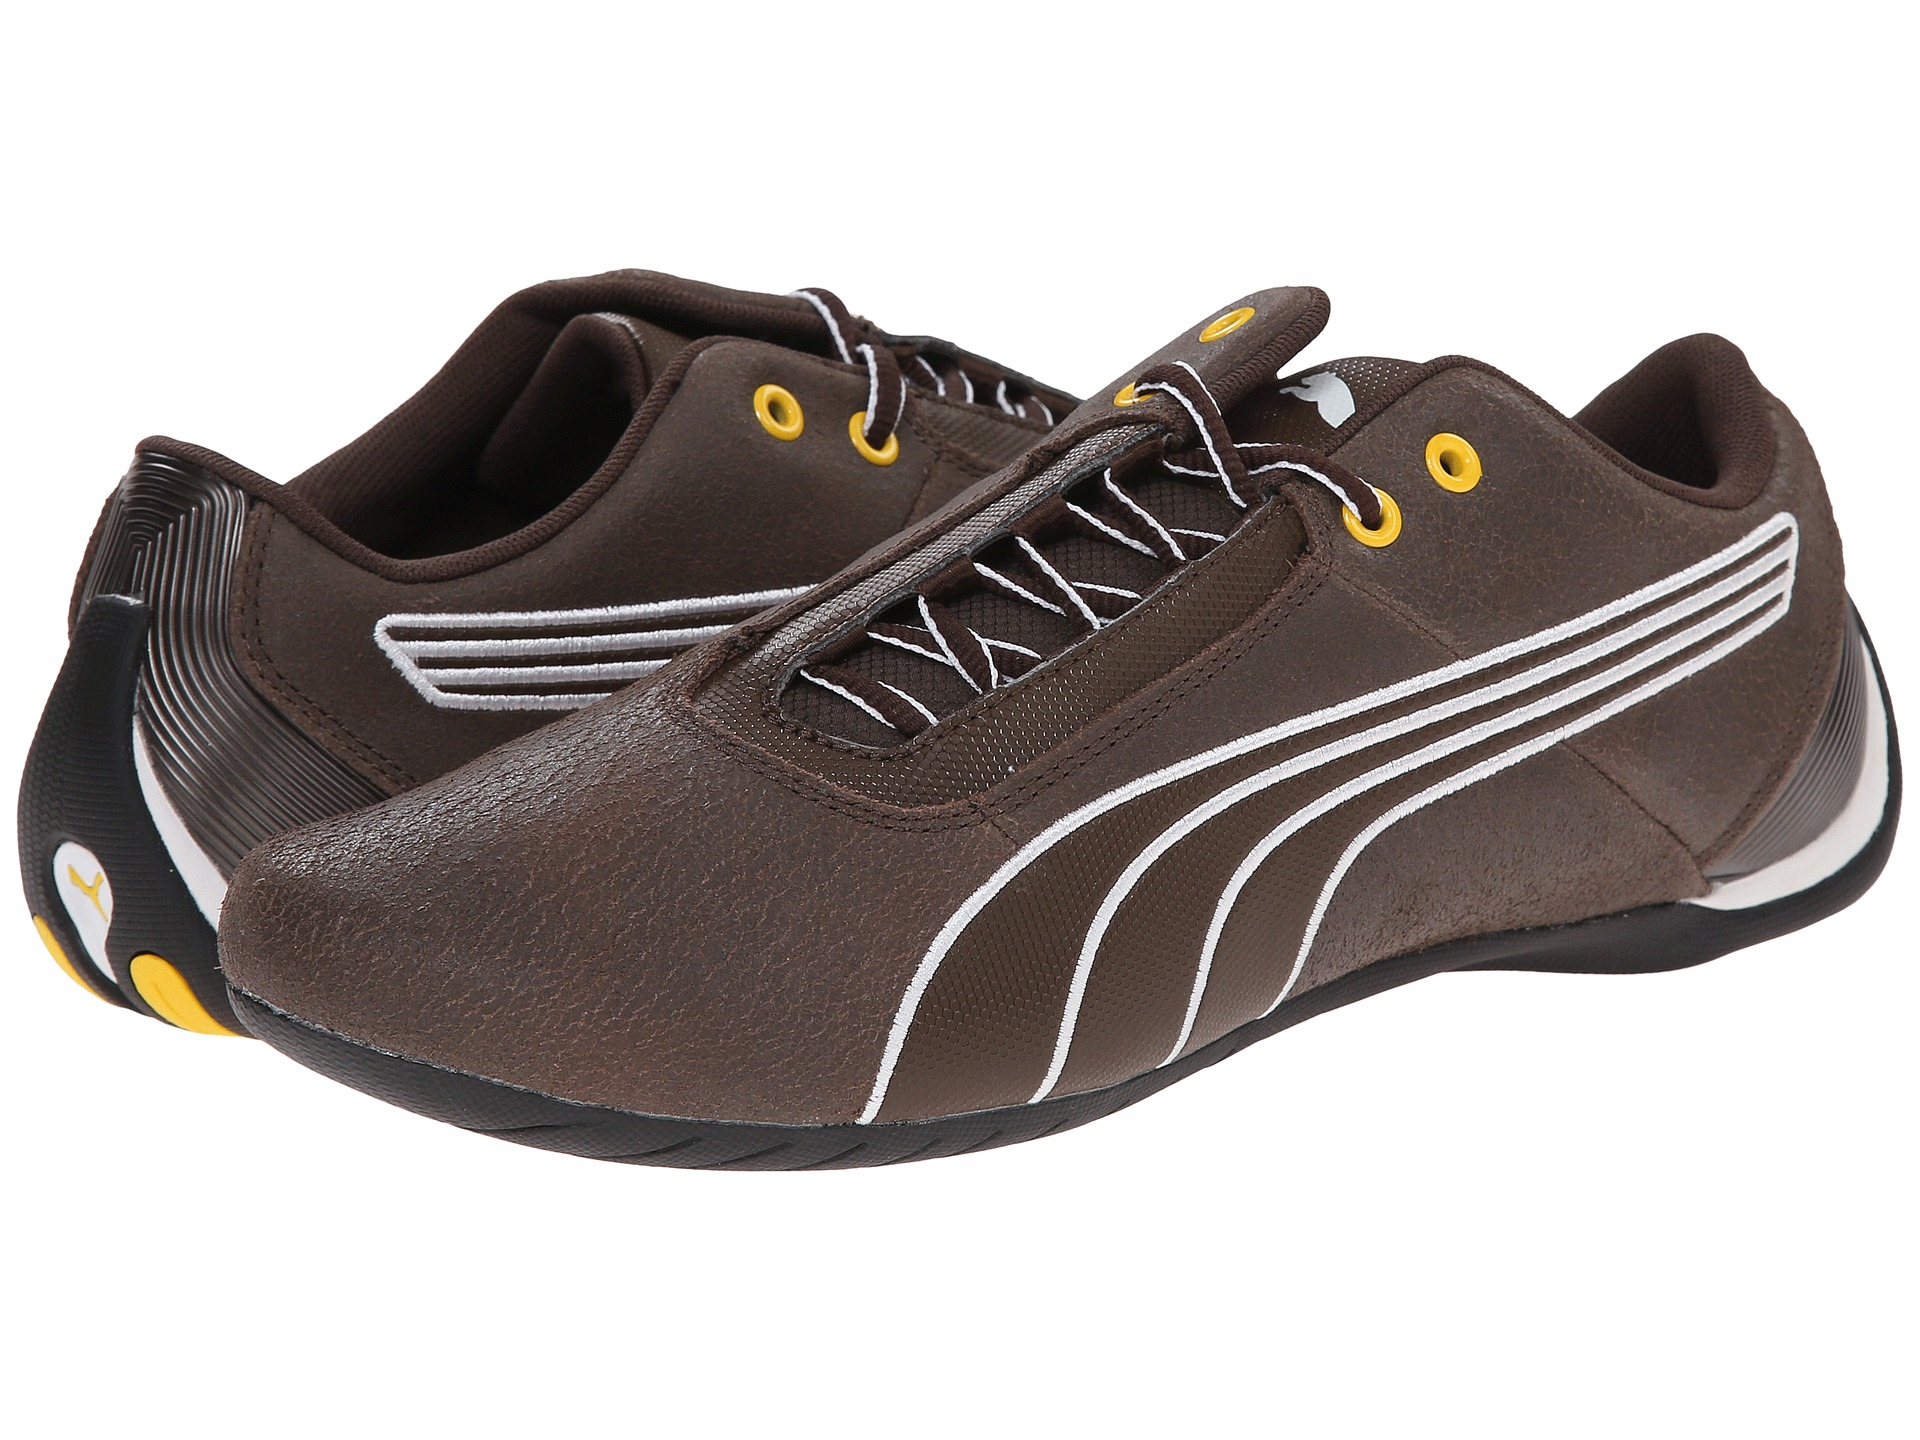 Lyst - PUMA Future Cat S1 Leather in Brown for Men dc6221345